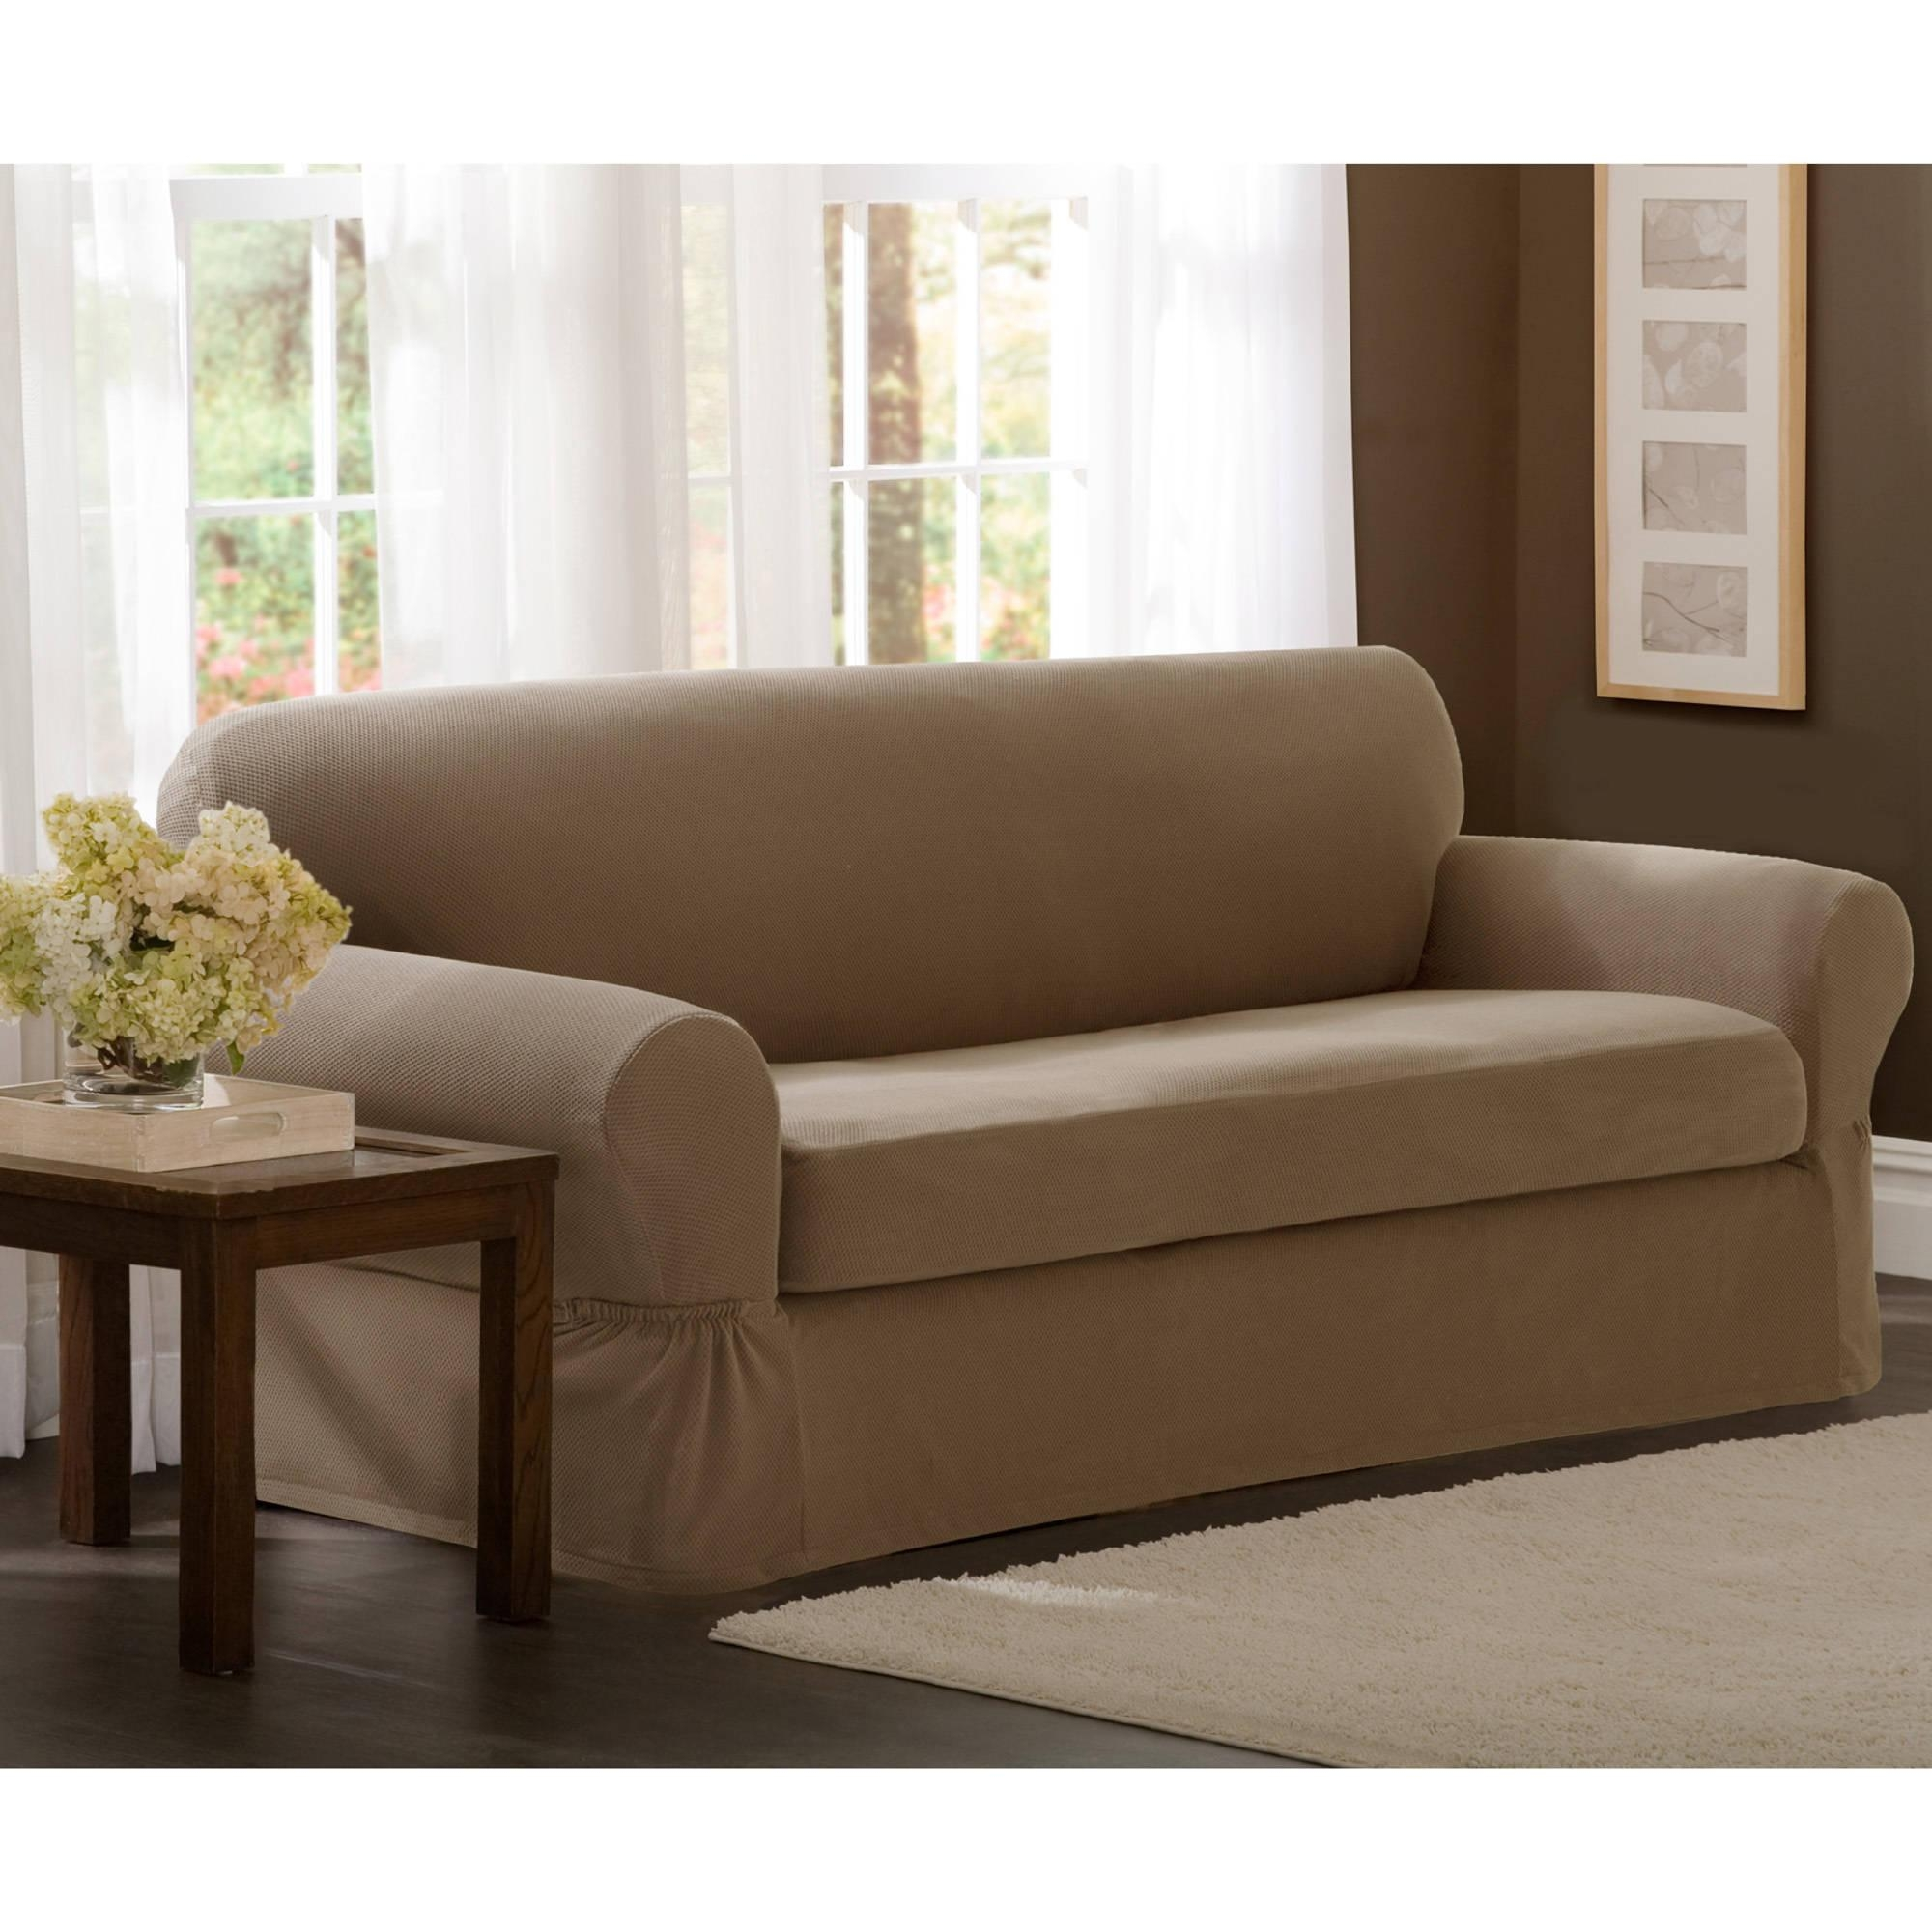 Maytex Stretch 2 Piece Sofa Slipcover – Walmart Throughout Stretch Slipcover Sofas (Image 9 of 20)